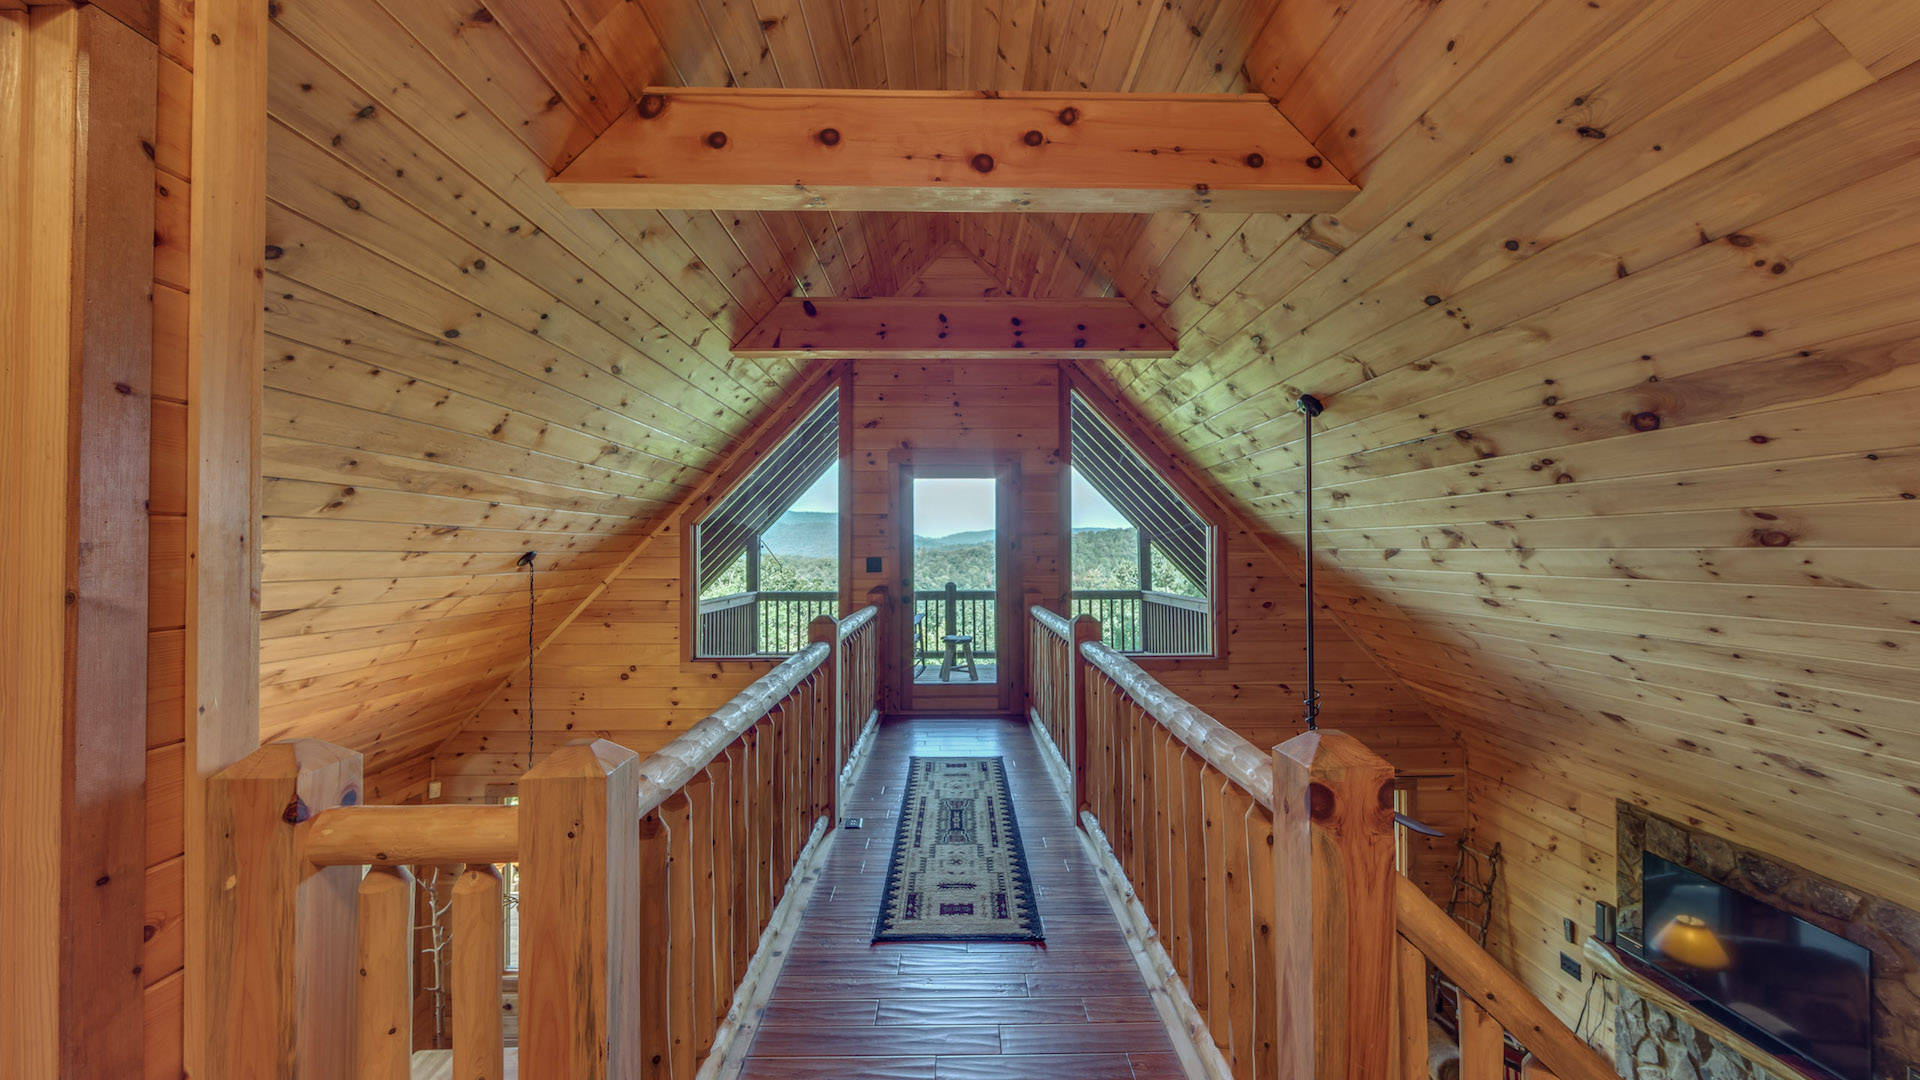 to only tahoe want awesome what bear i pet cabin close friendly rentals lake photograph of mine eerily cabins in big